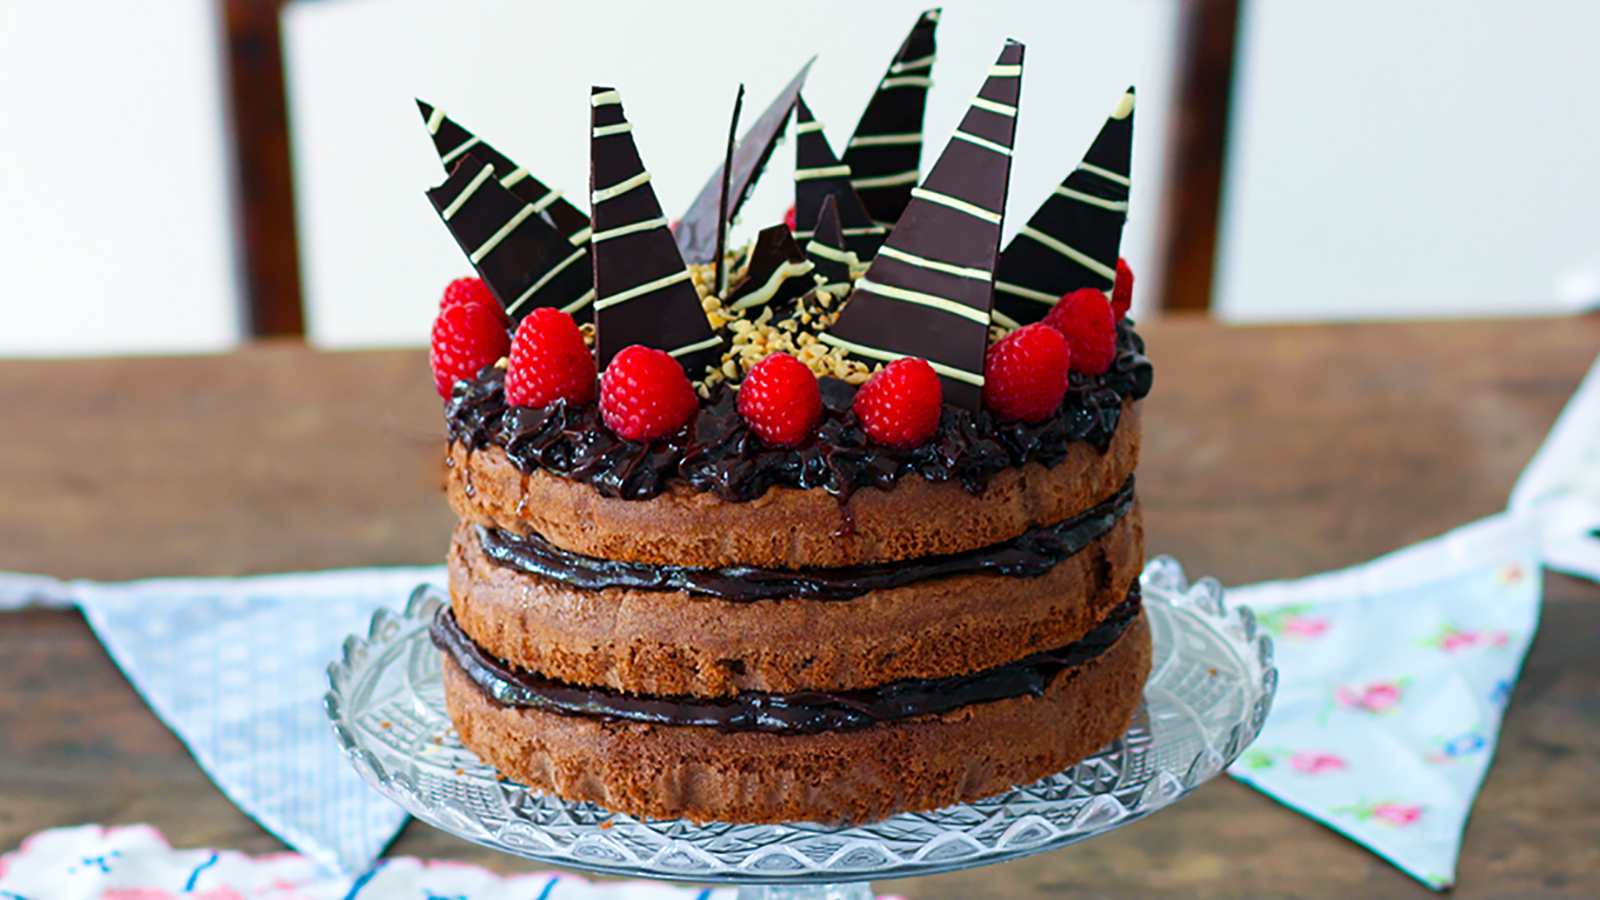 Wondrous Birthday Chocolate Cake Recipe Bbc Food Funny Birthday Cards Online Barepcheapnameinfo